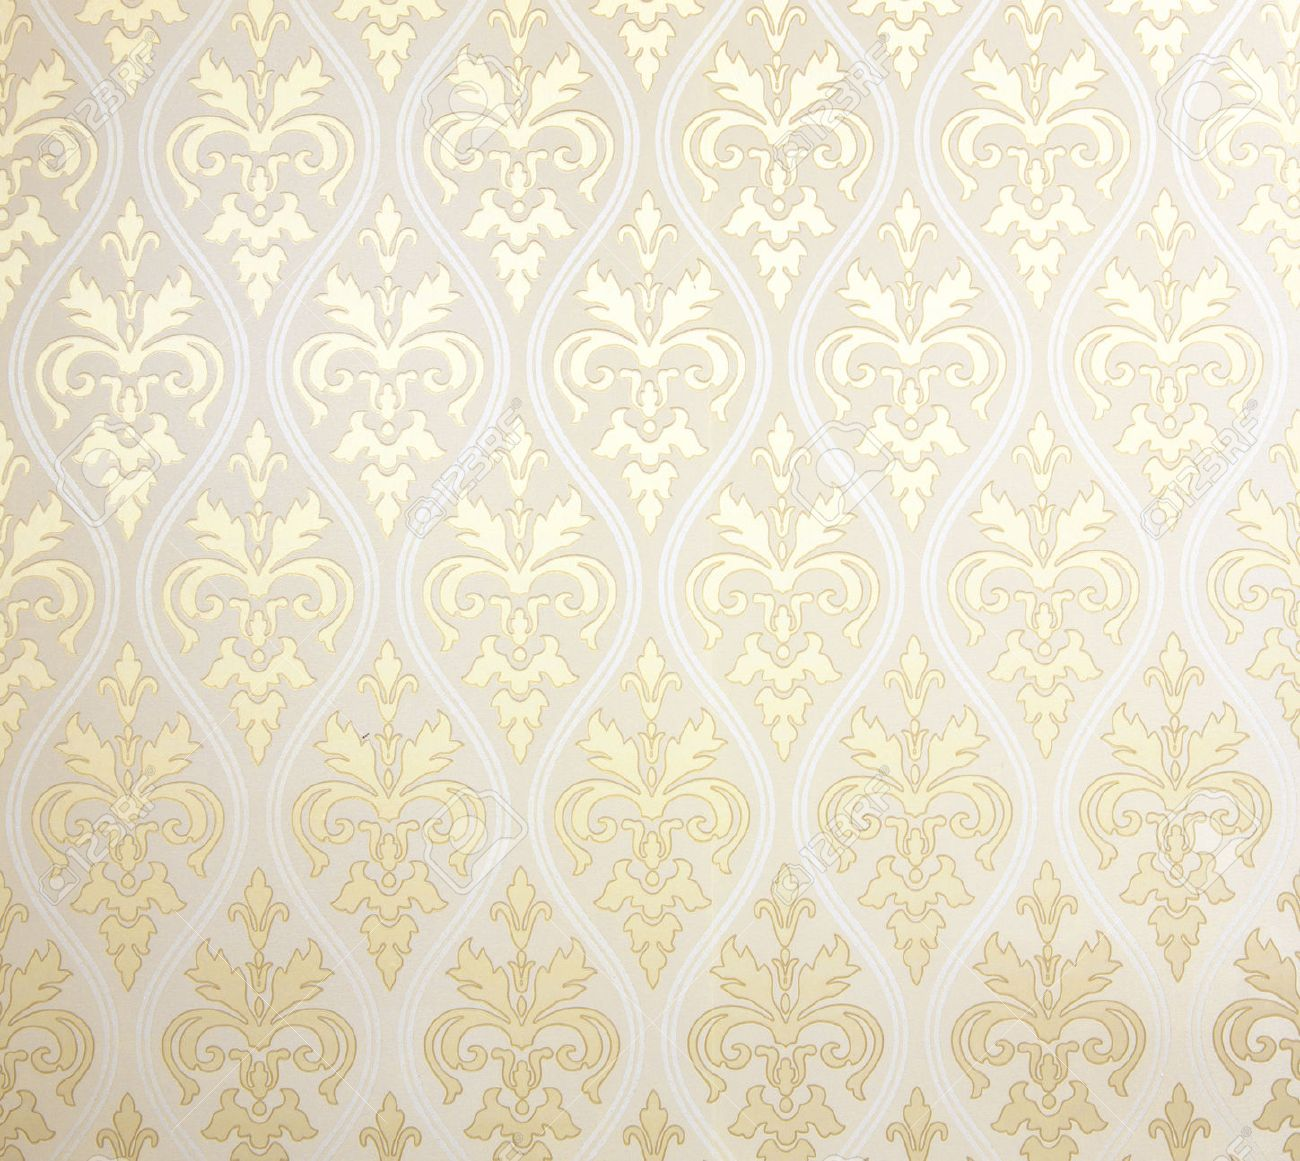 Interior wallpaper texture - Floral Wallpaper Pattern Light Yellow Abstract Background Texture Interior Stock Photo 29561603